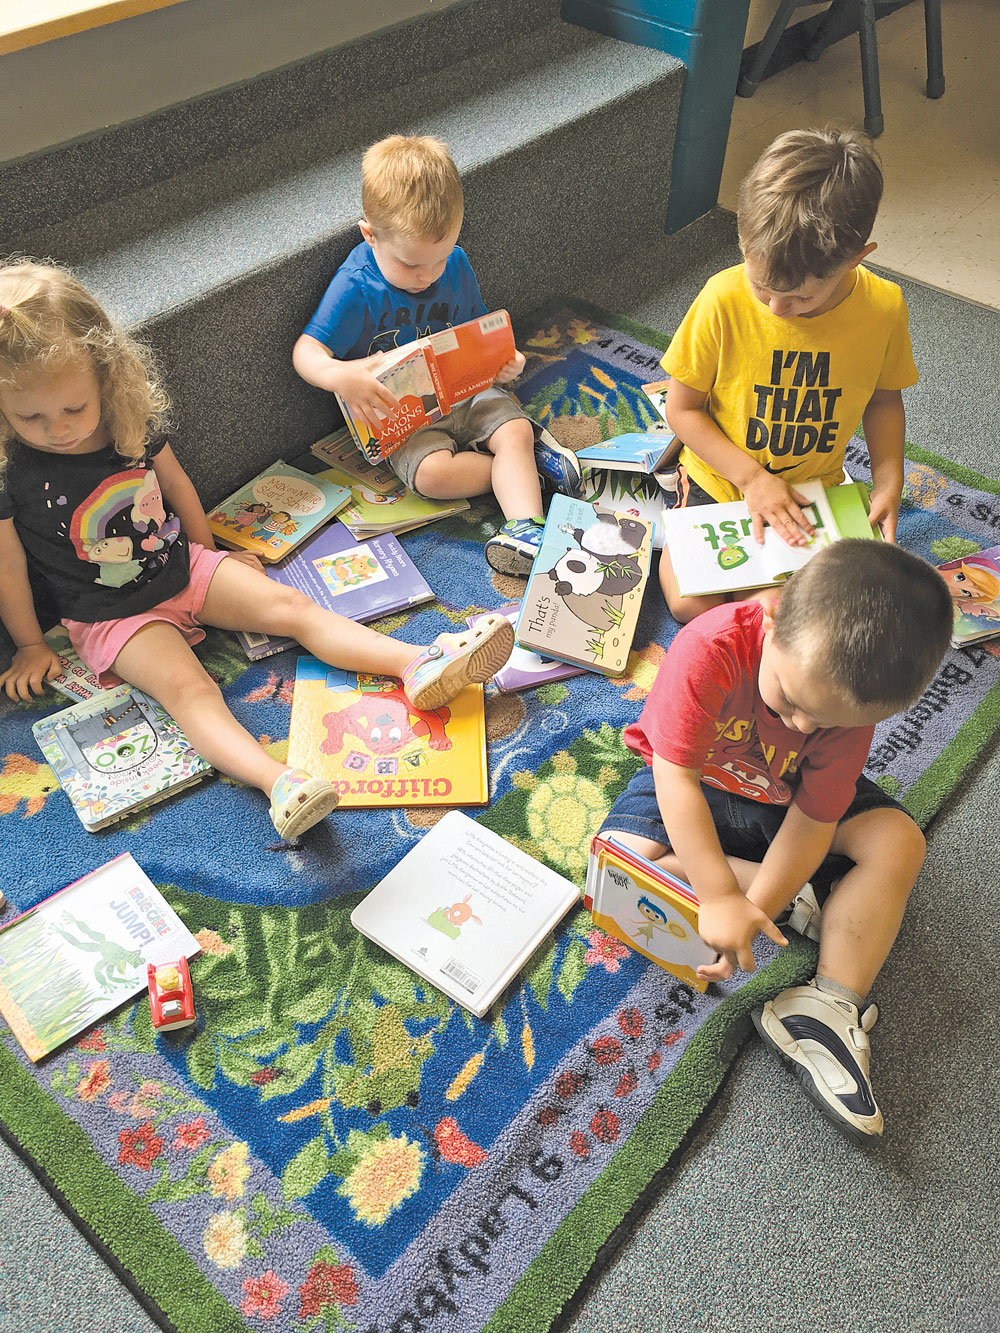 TLC meets challenges of providing child care during COVID crisis